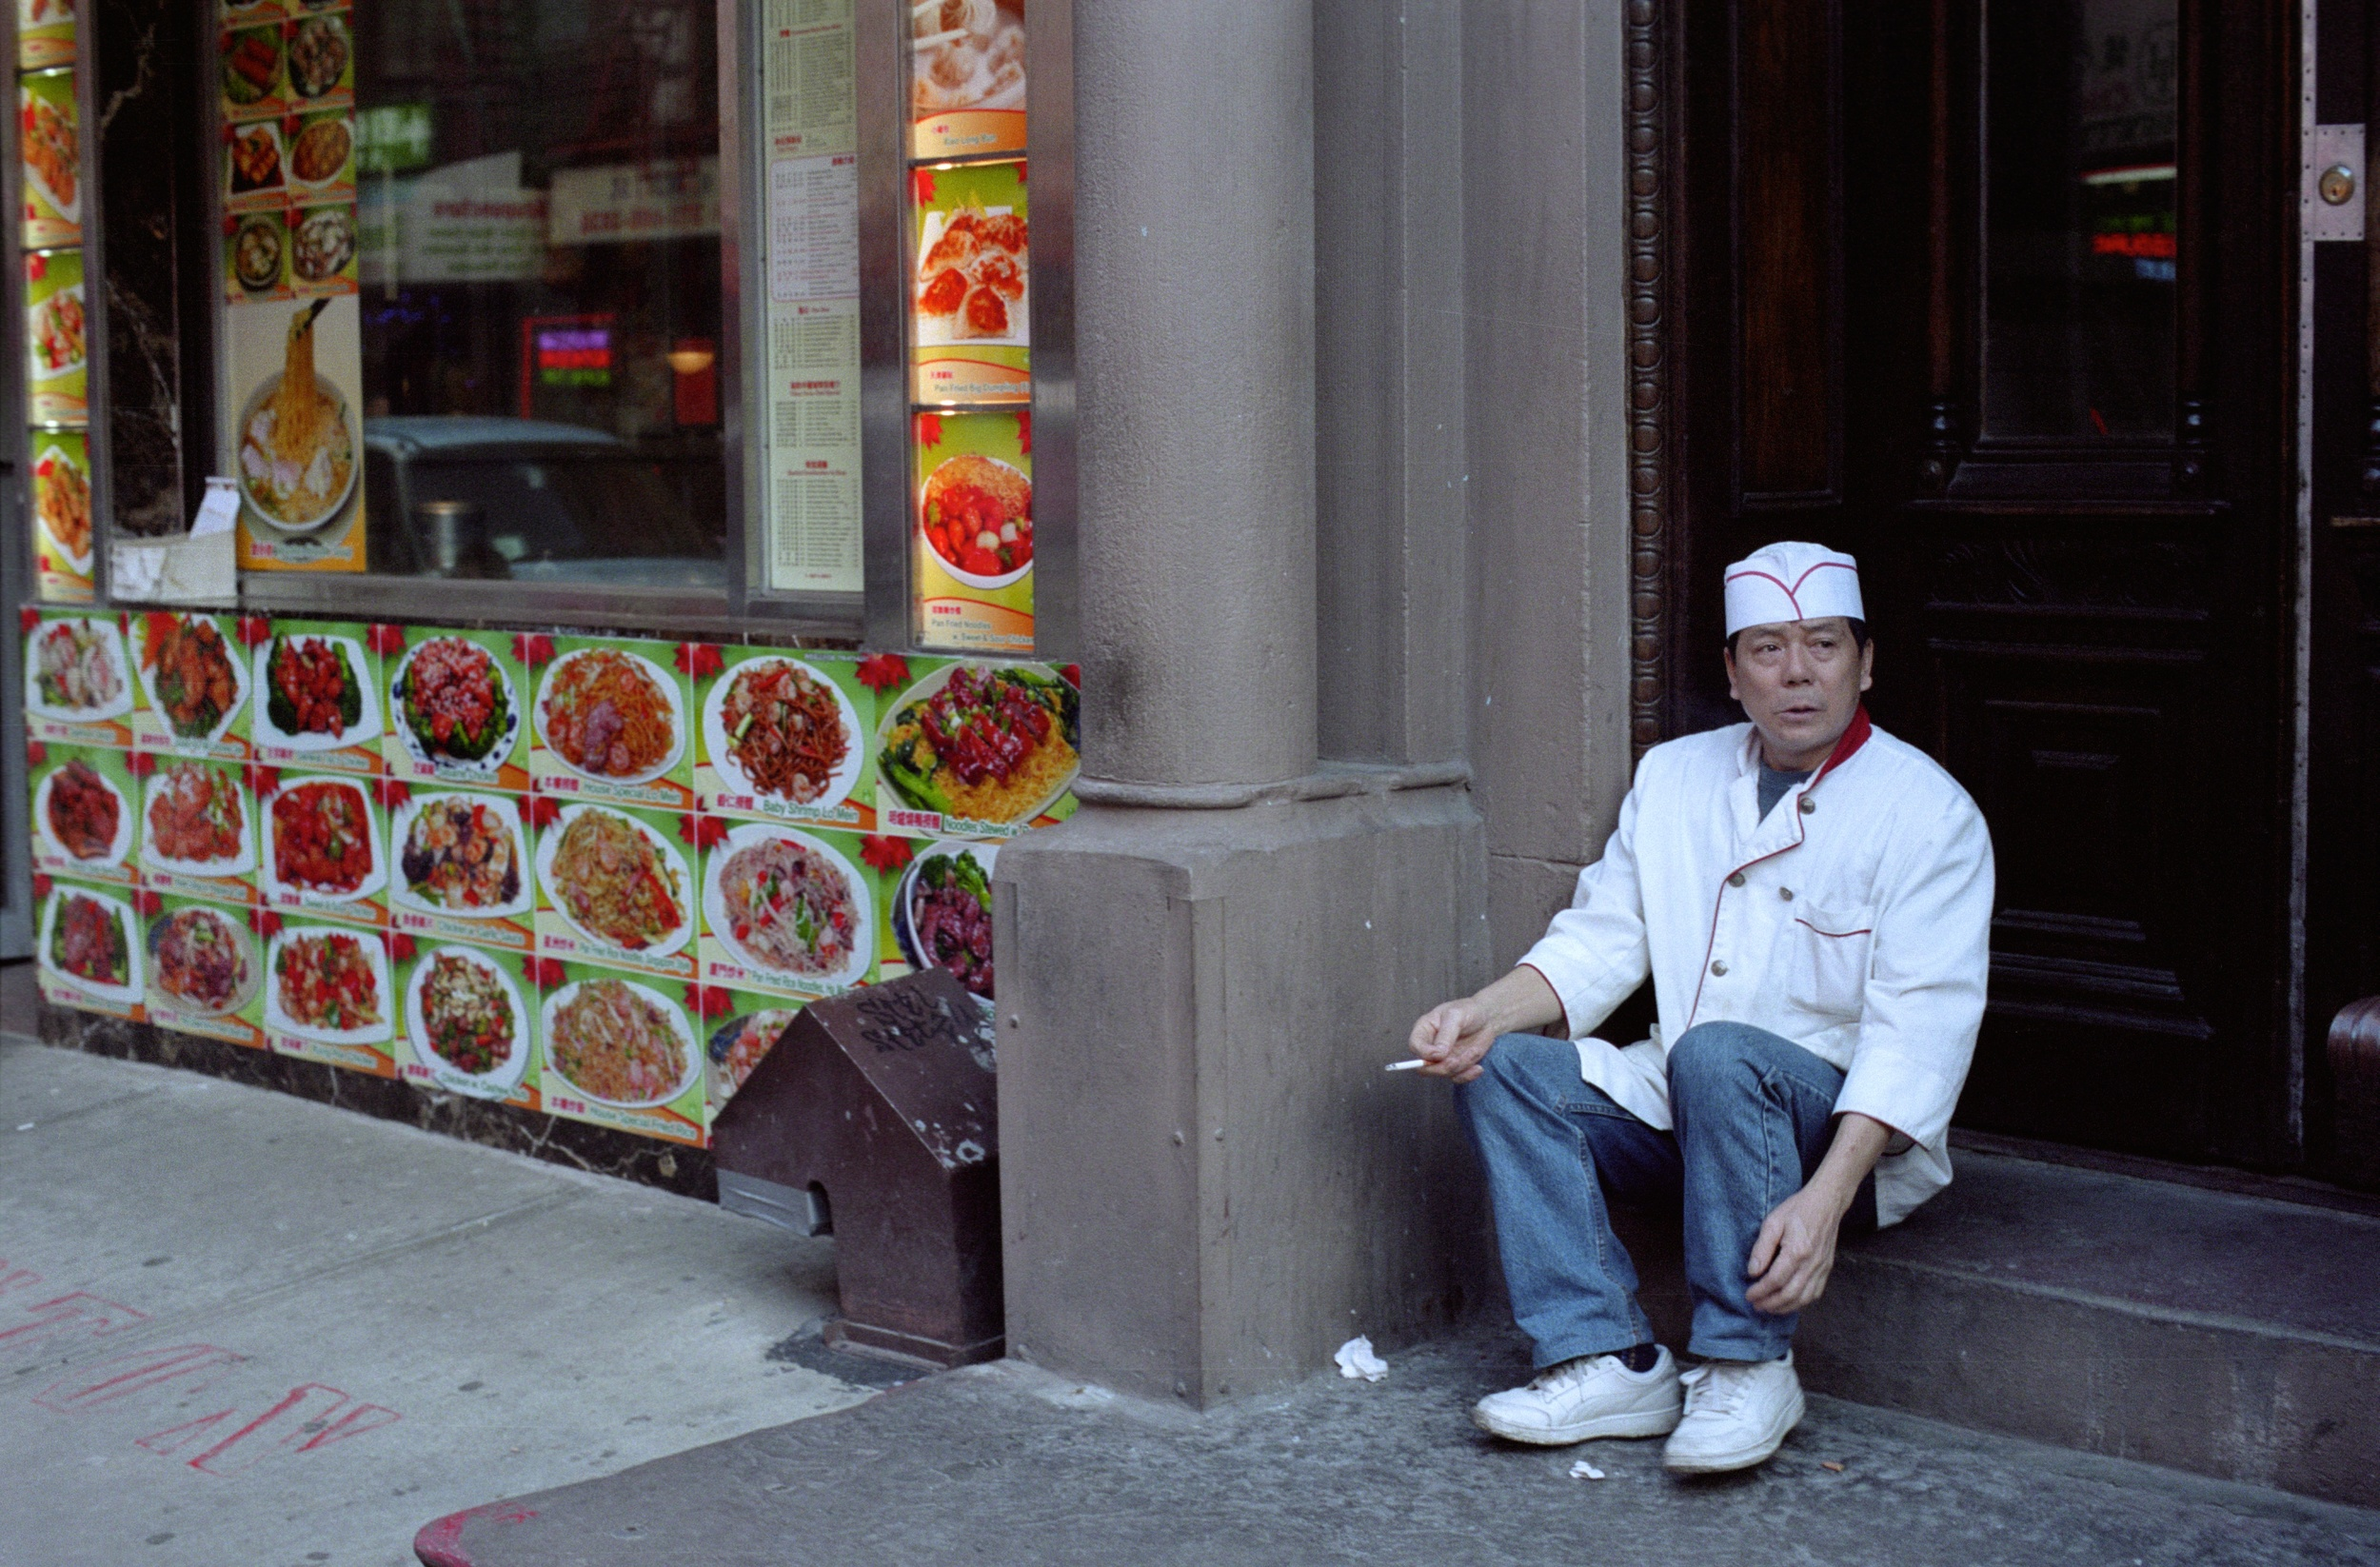 Smoking Man, New York City, NY. 2014. C-Print.